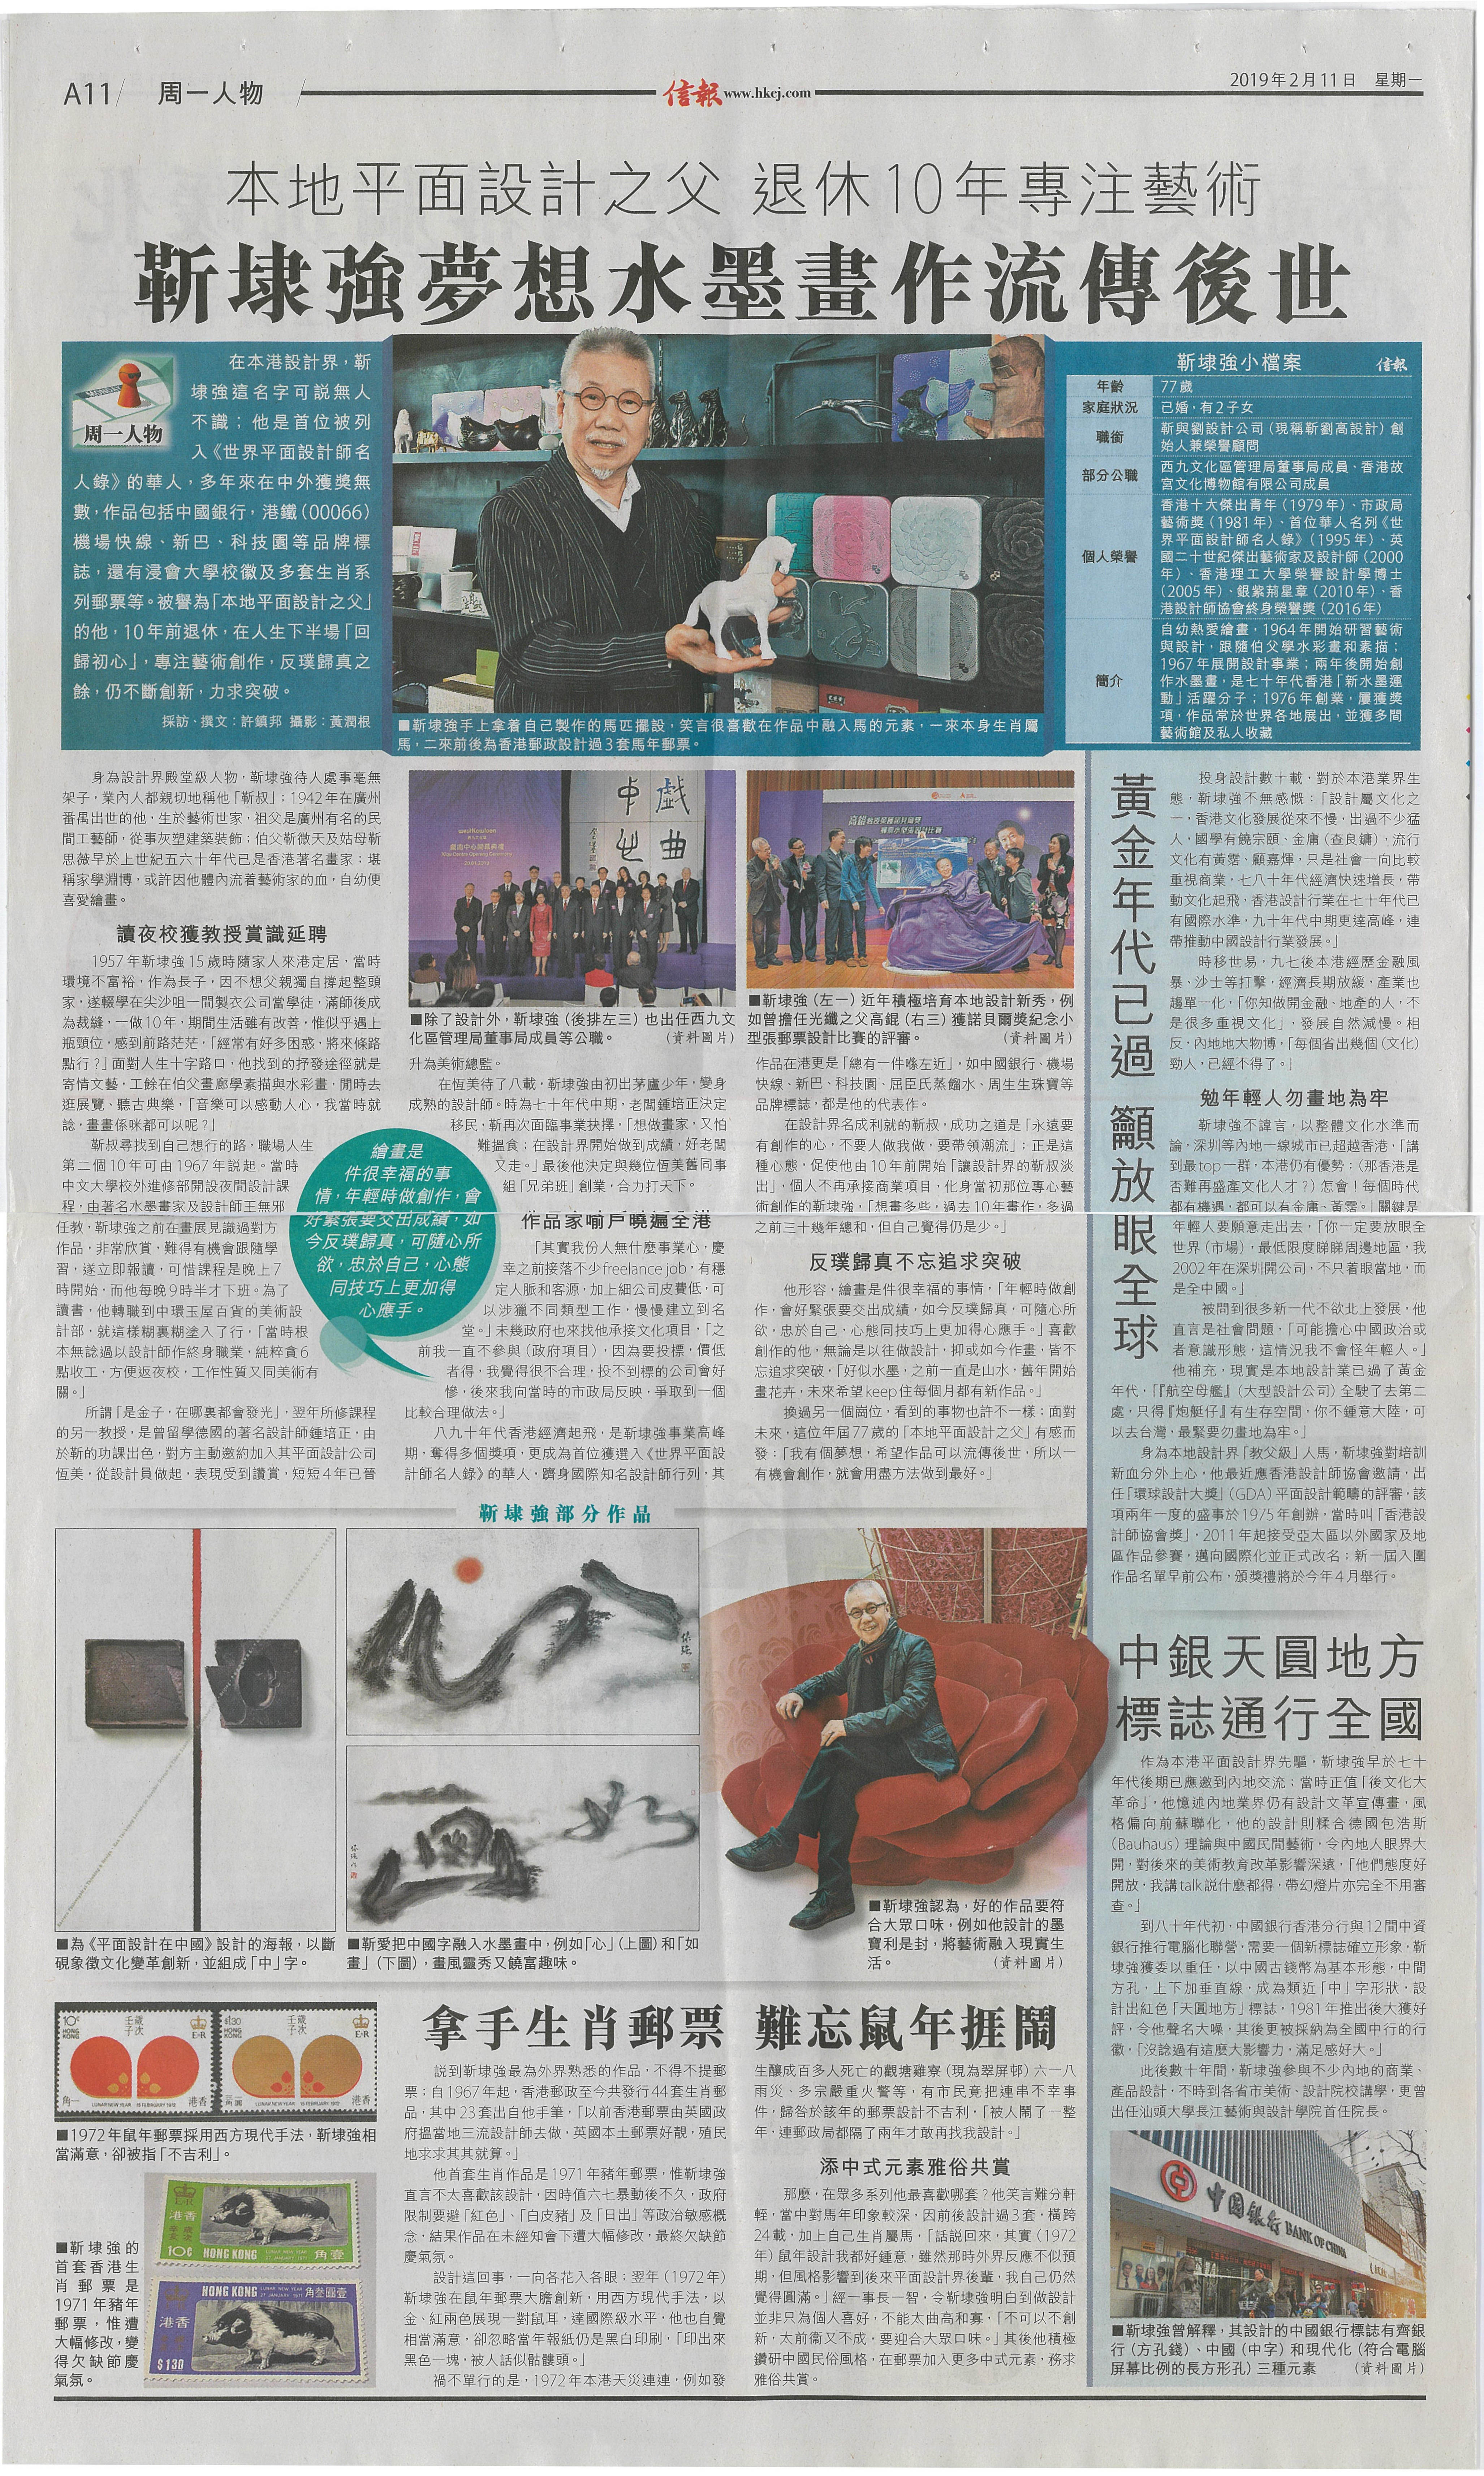 HKEJ Dr Kan News paper clipping